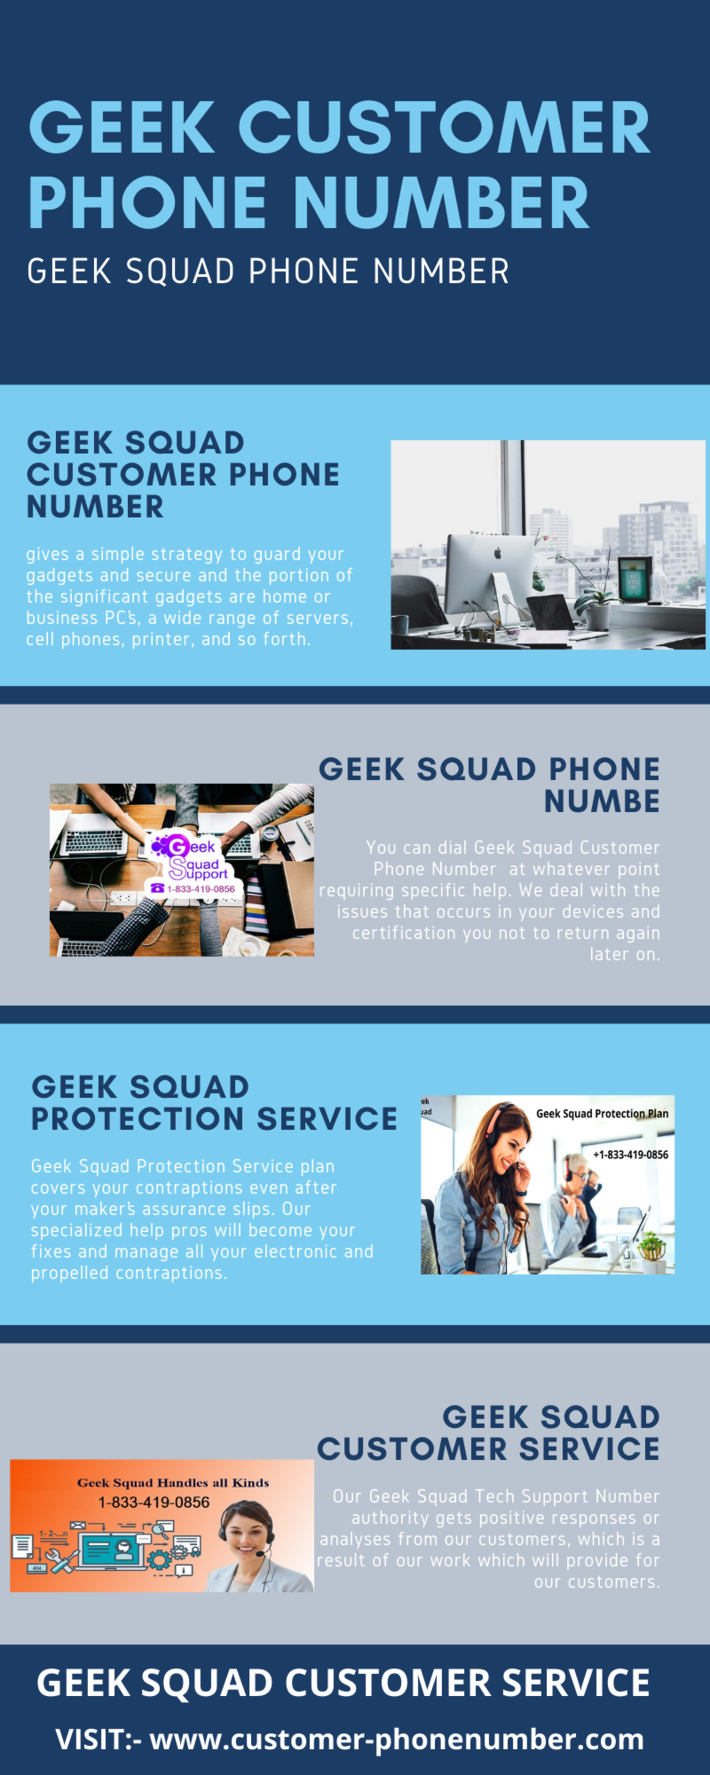 Geek Squad TV Repair HelpDesk in USA